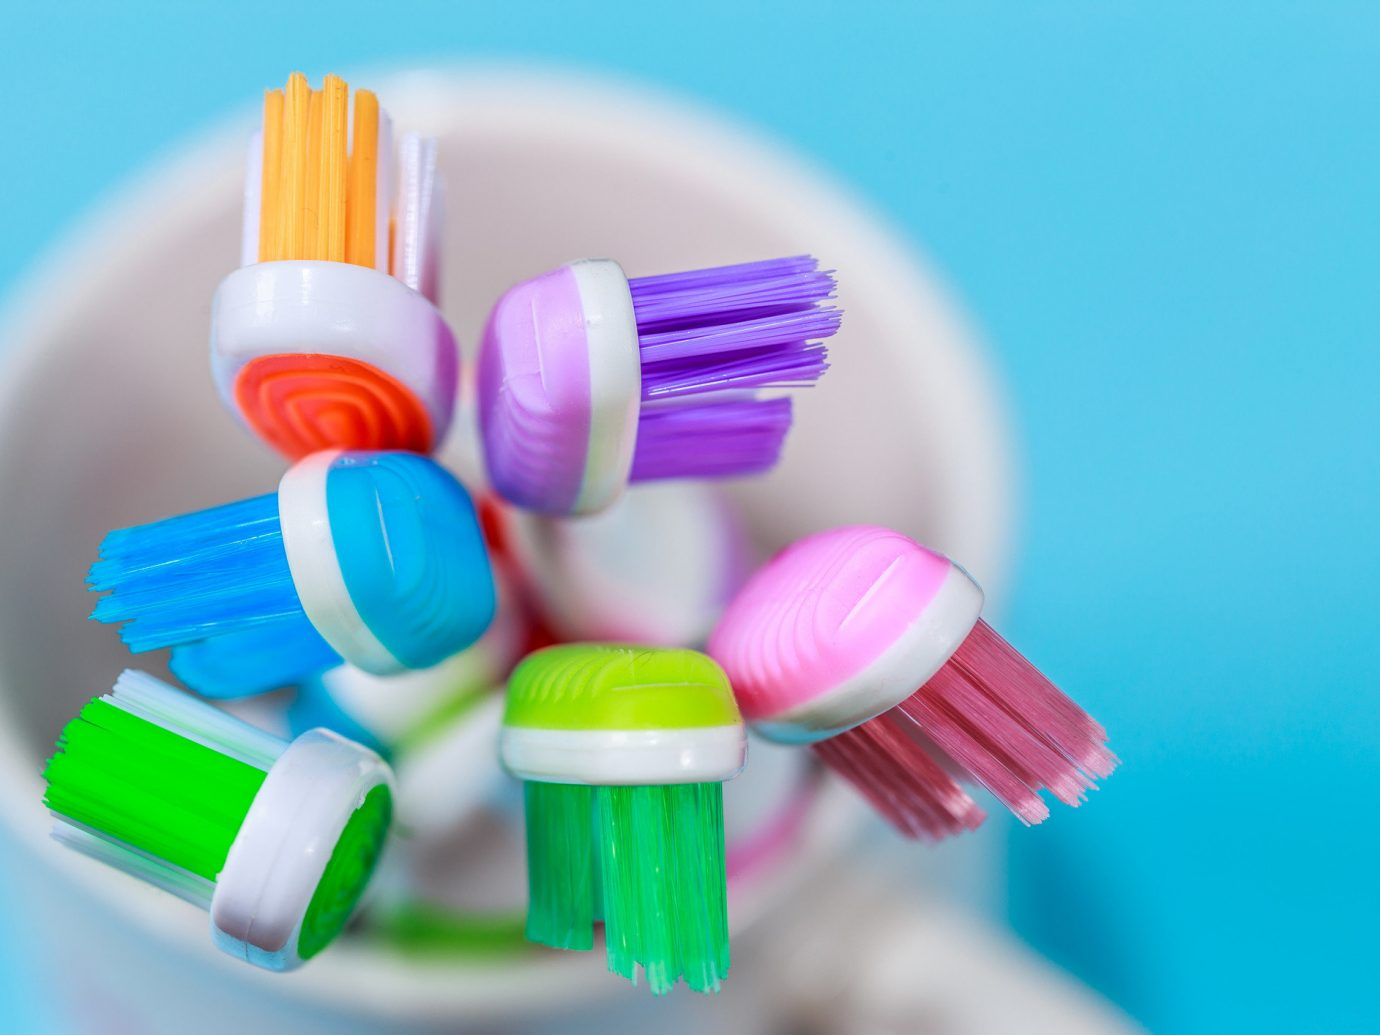 Bright colored toothbrushes